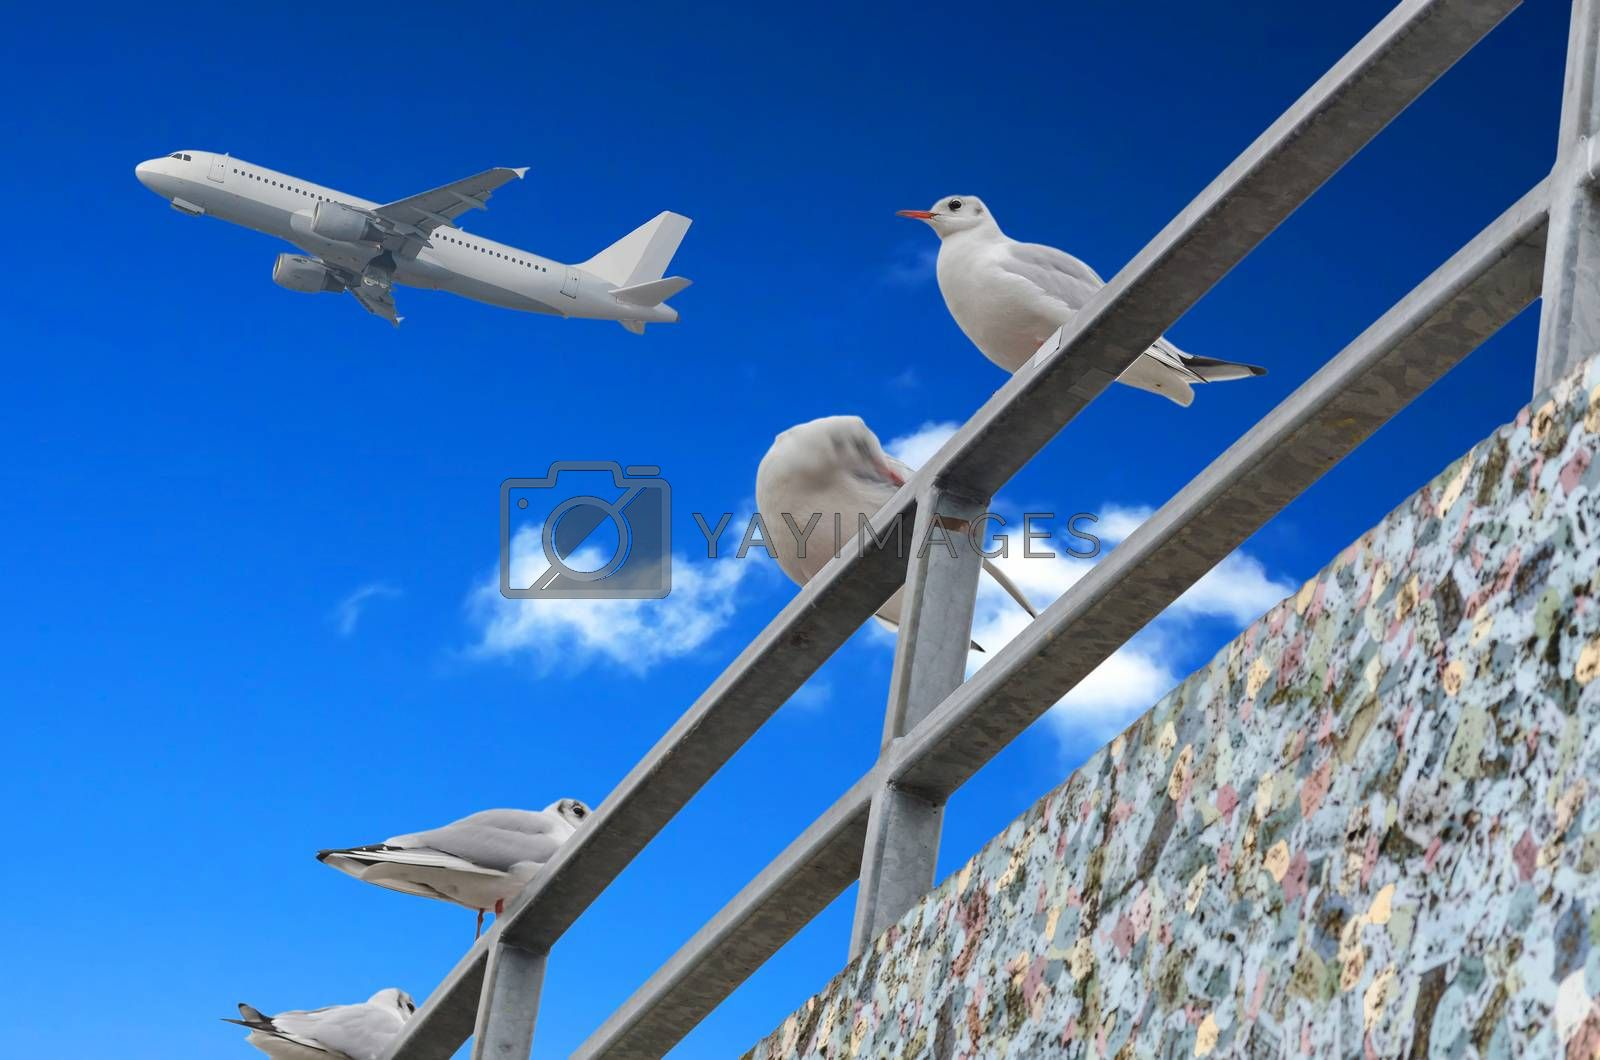 Four seagulls on Gelänger on background of blue sky with clouds and an airplane.